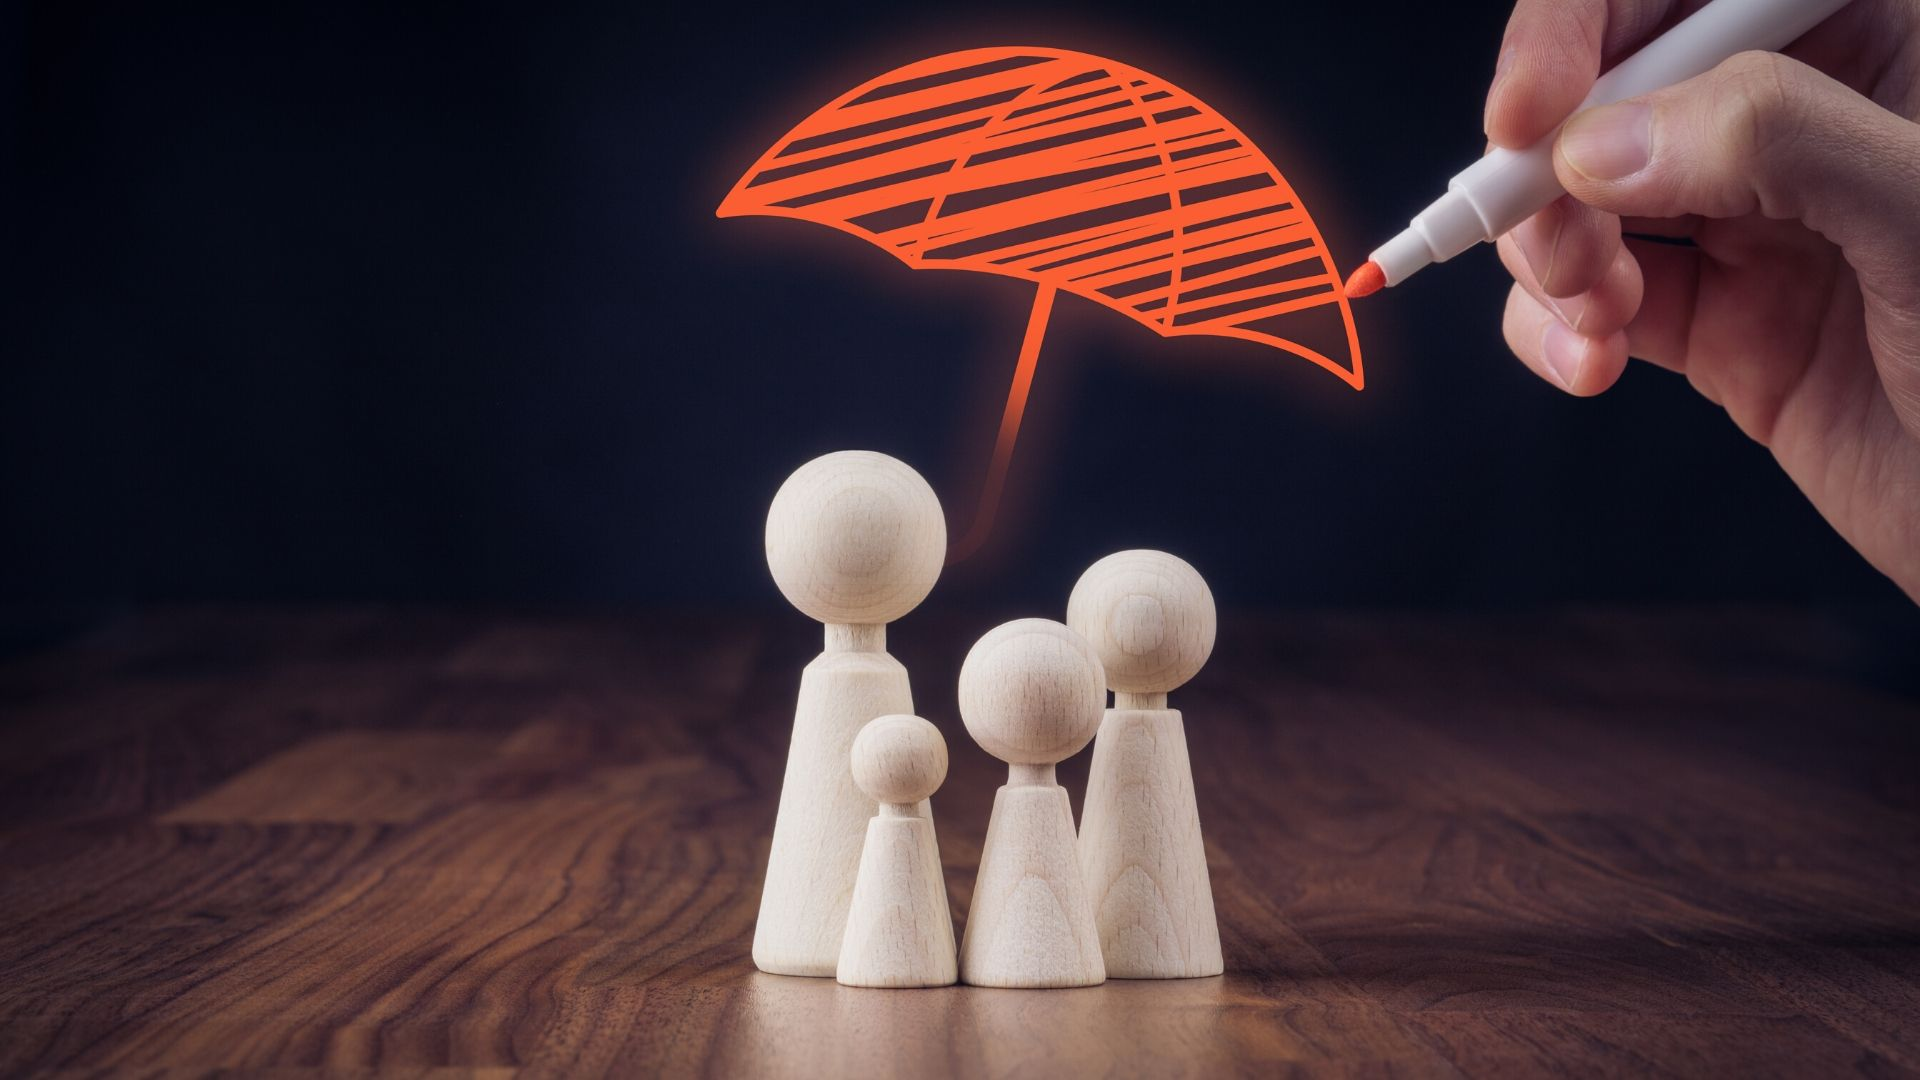 image of 4 wooden figures representing a family with someone drawing an umbrella over the top of them with an orange pen, representing financial protection